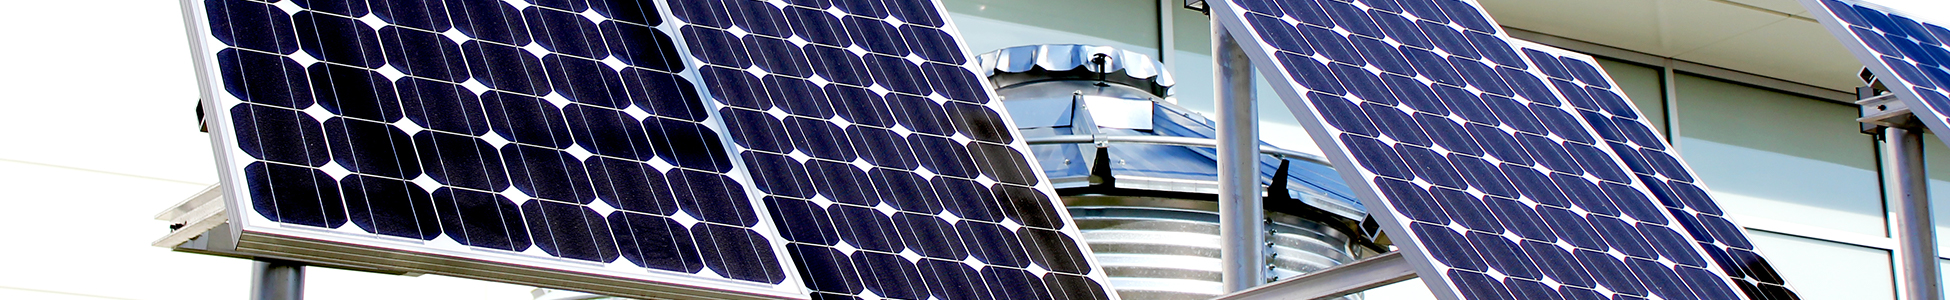 Solar cell panels on top of a building